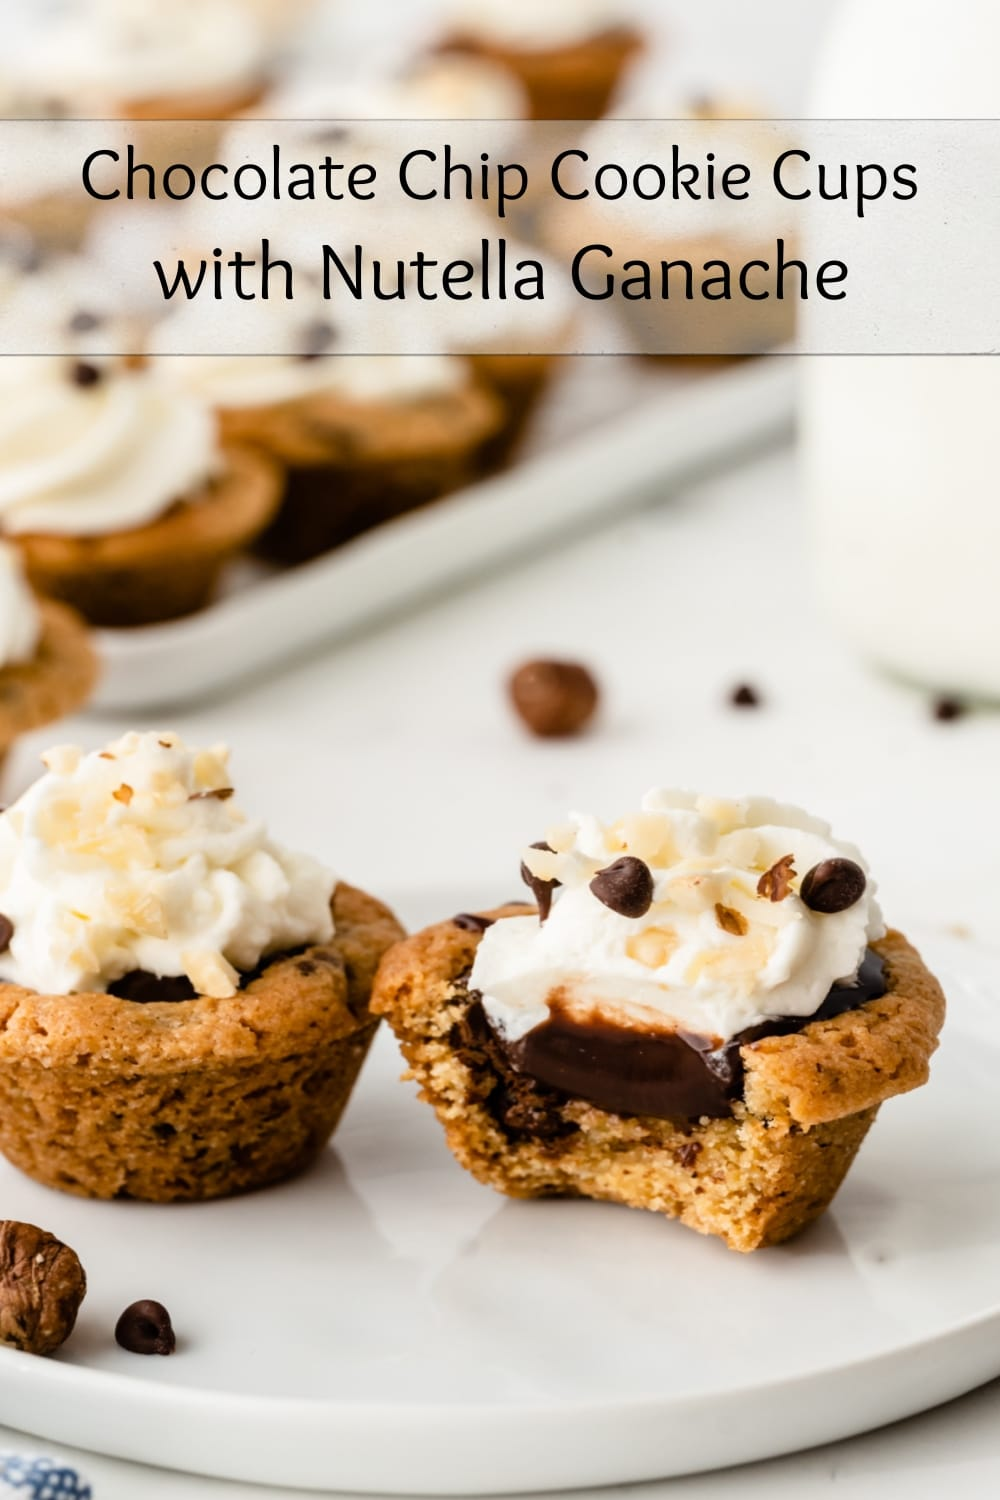 Chocolate Chip Cookie Cups filled with a simple to make Nutella ganache and topped with whipped cream, the perfect sweet treat when that chocolate craving hits. via @cmpollak1